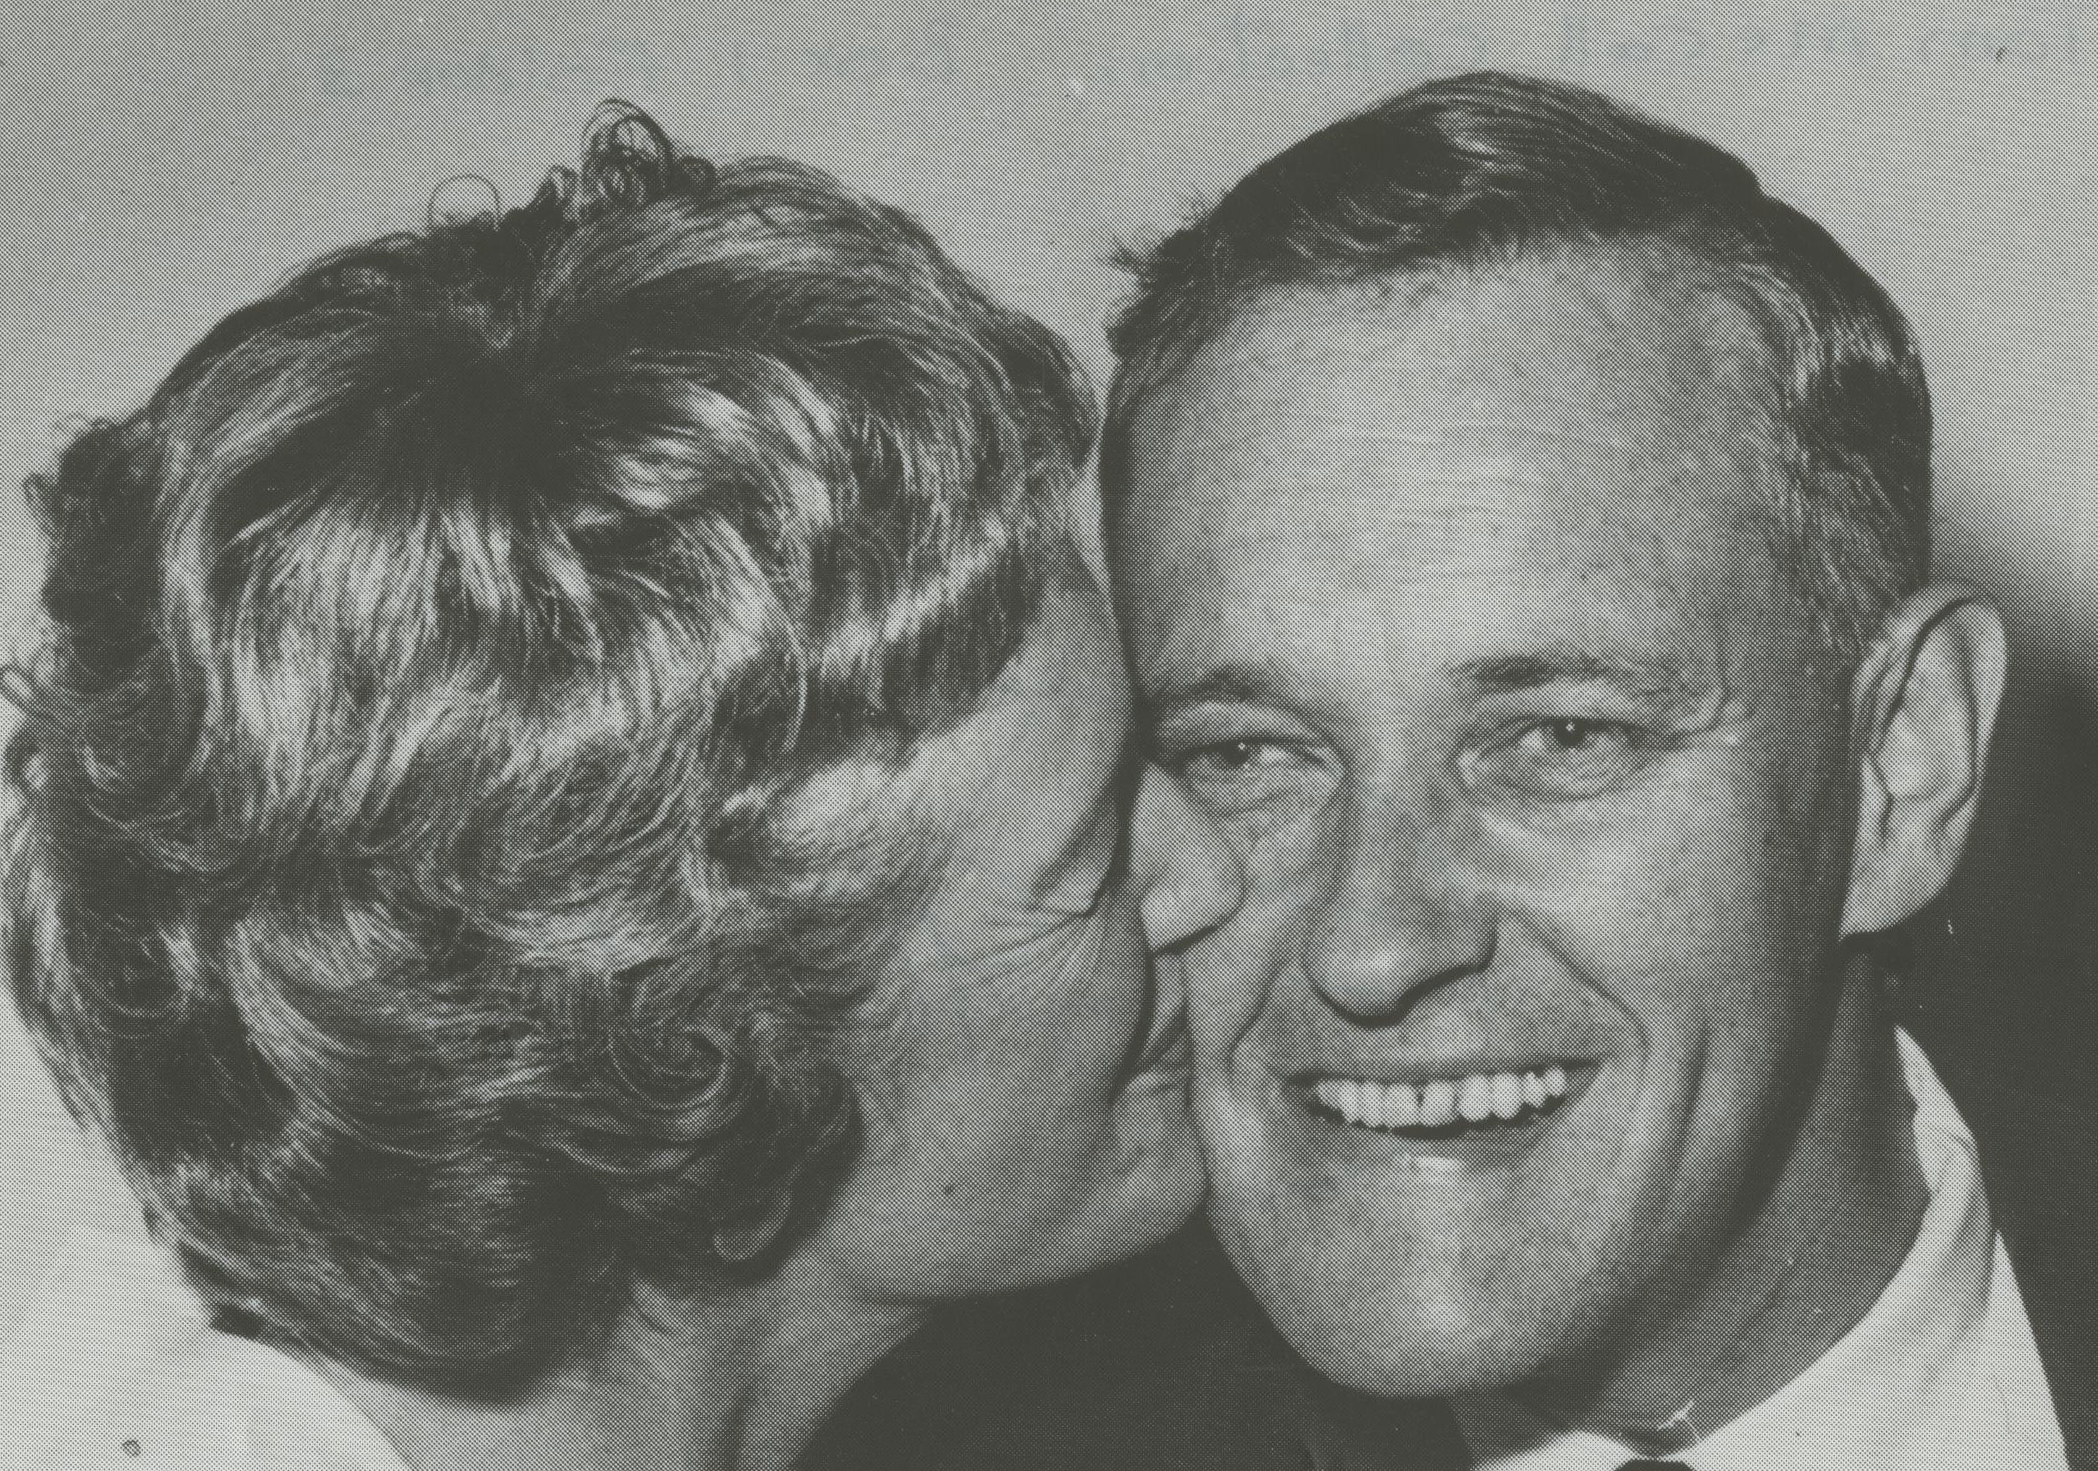 Audrey and Tom McCall, 1964, following Sec. of State win